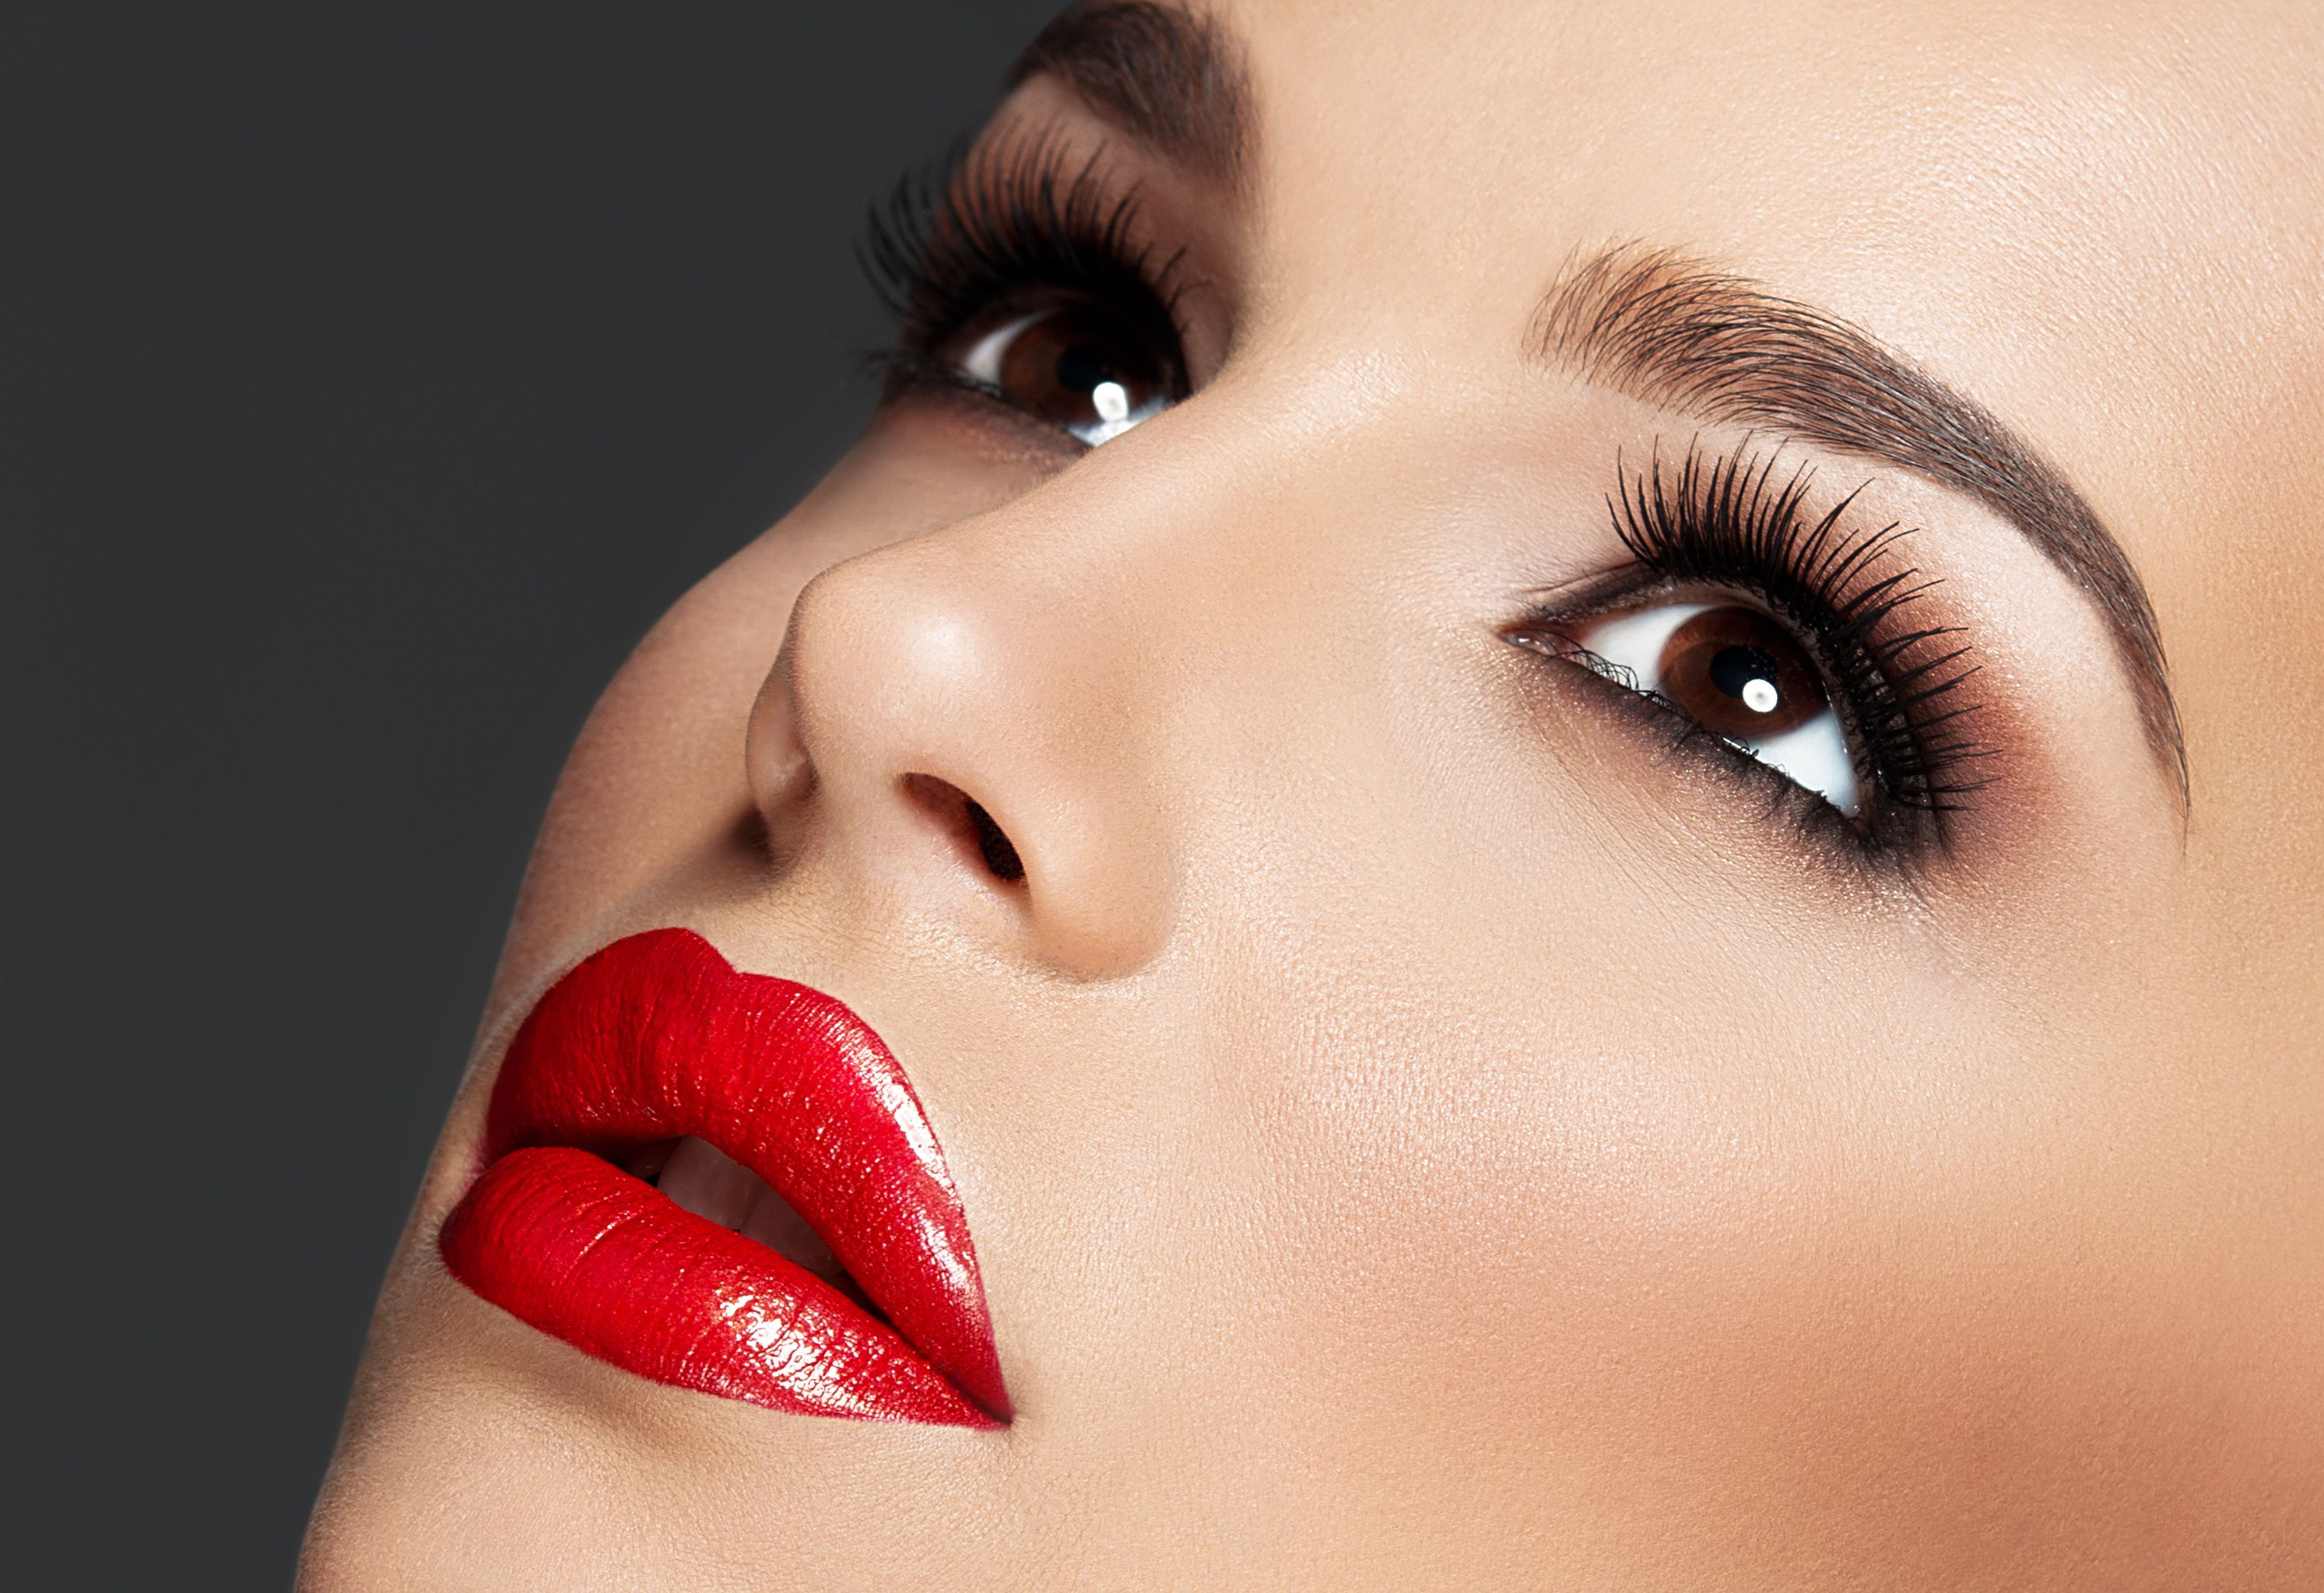 Lip fillers could make women could go blind, suffer a